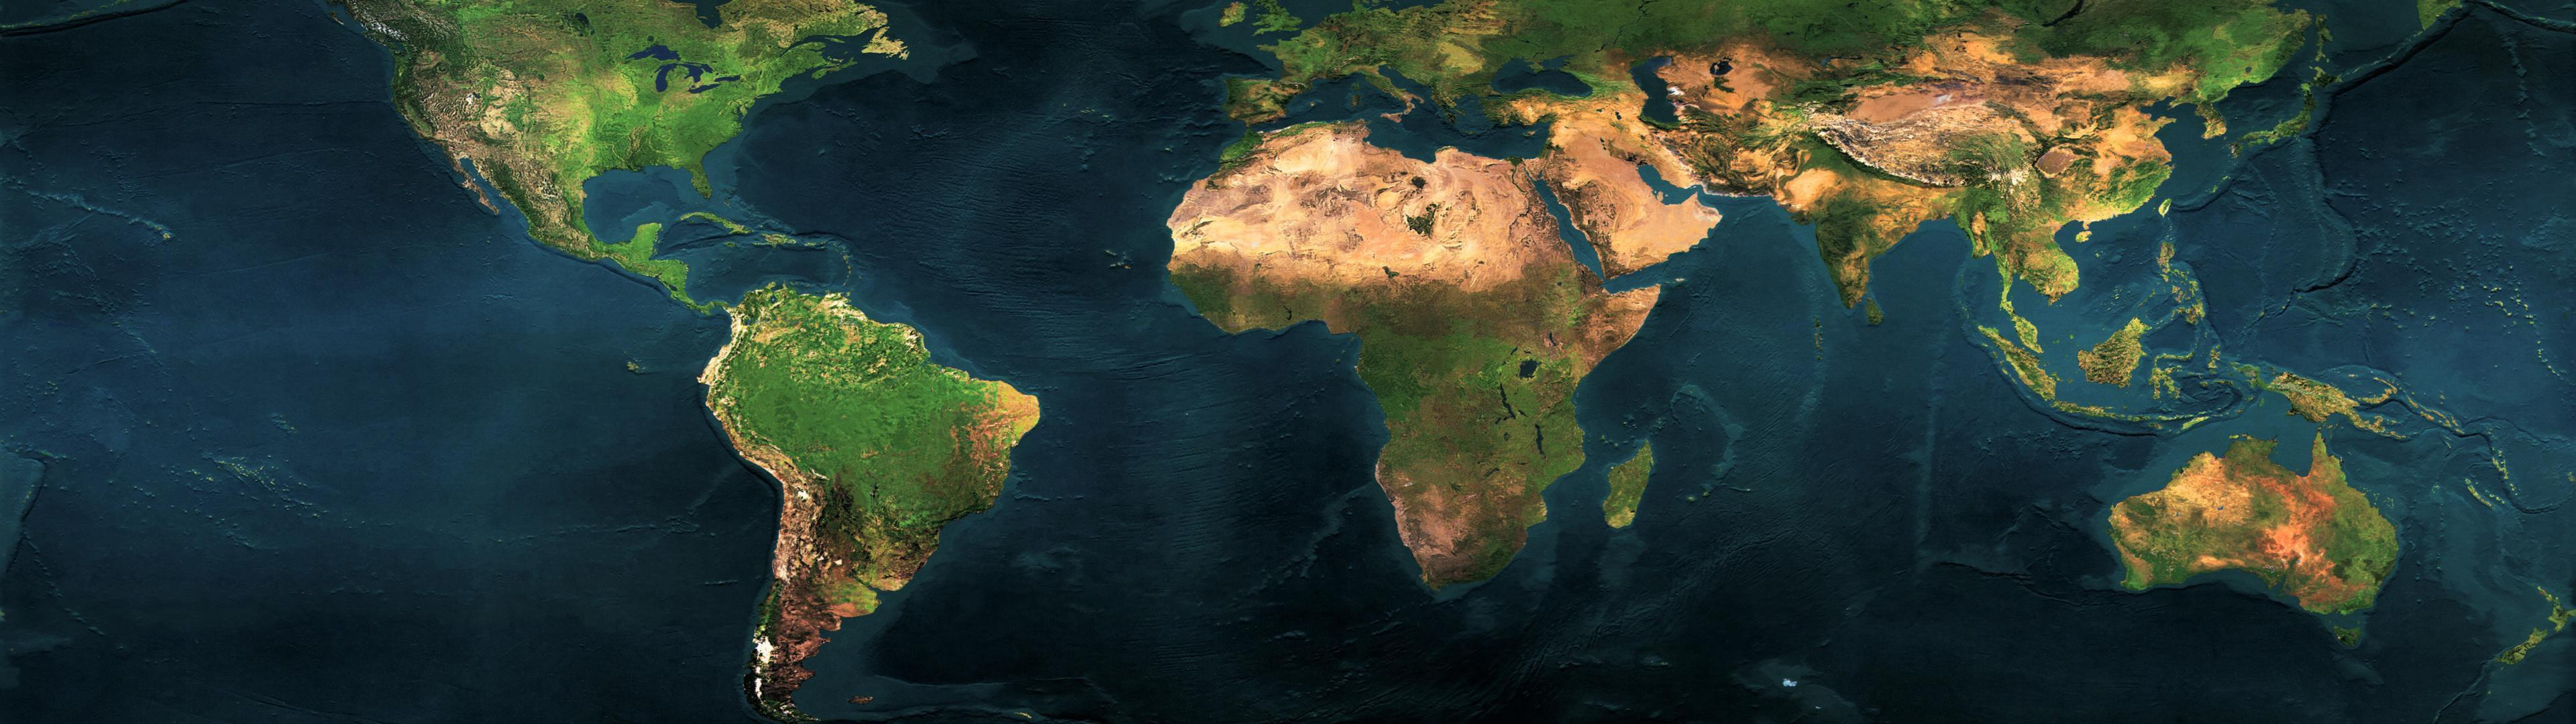 earth view map - HD